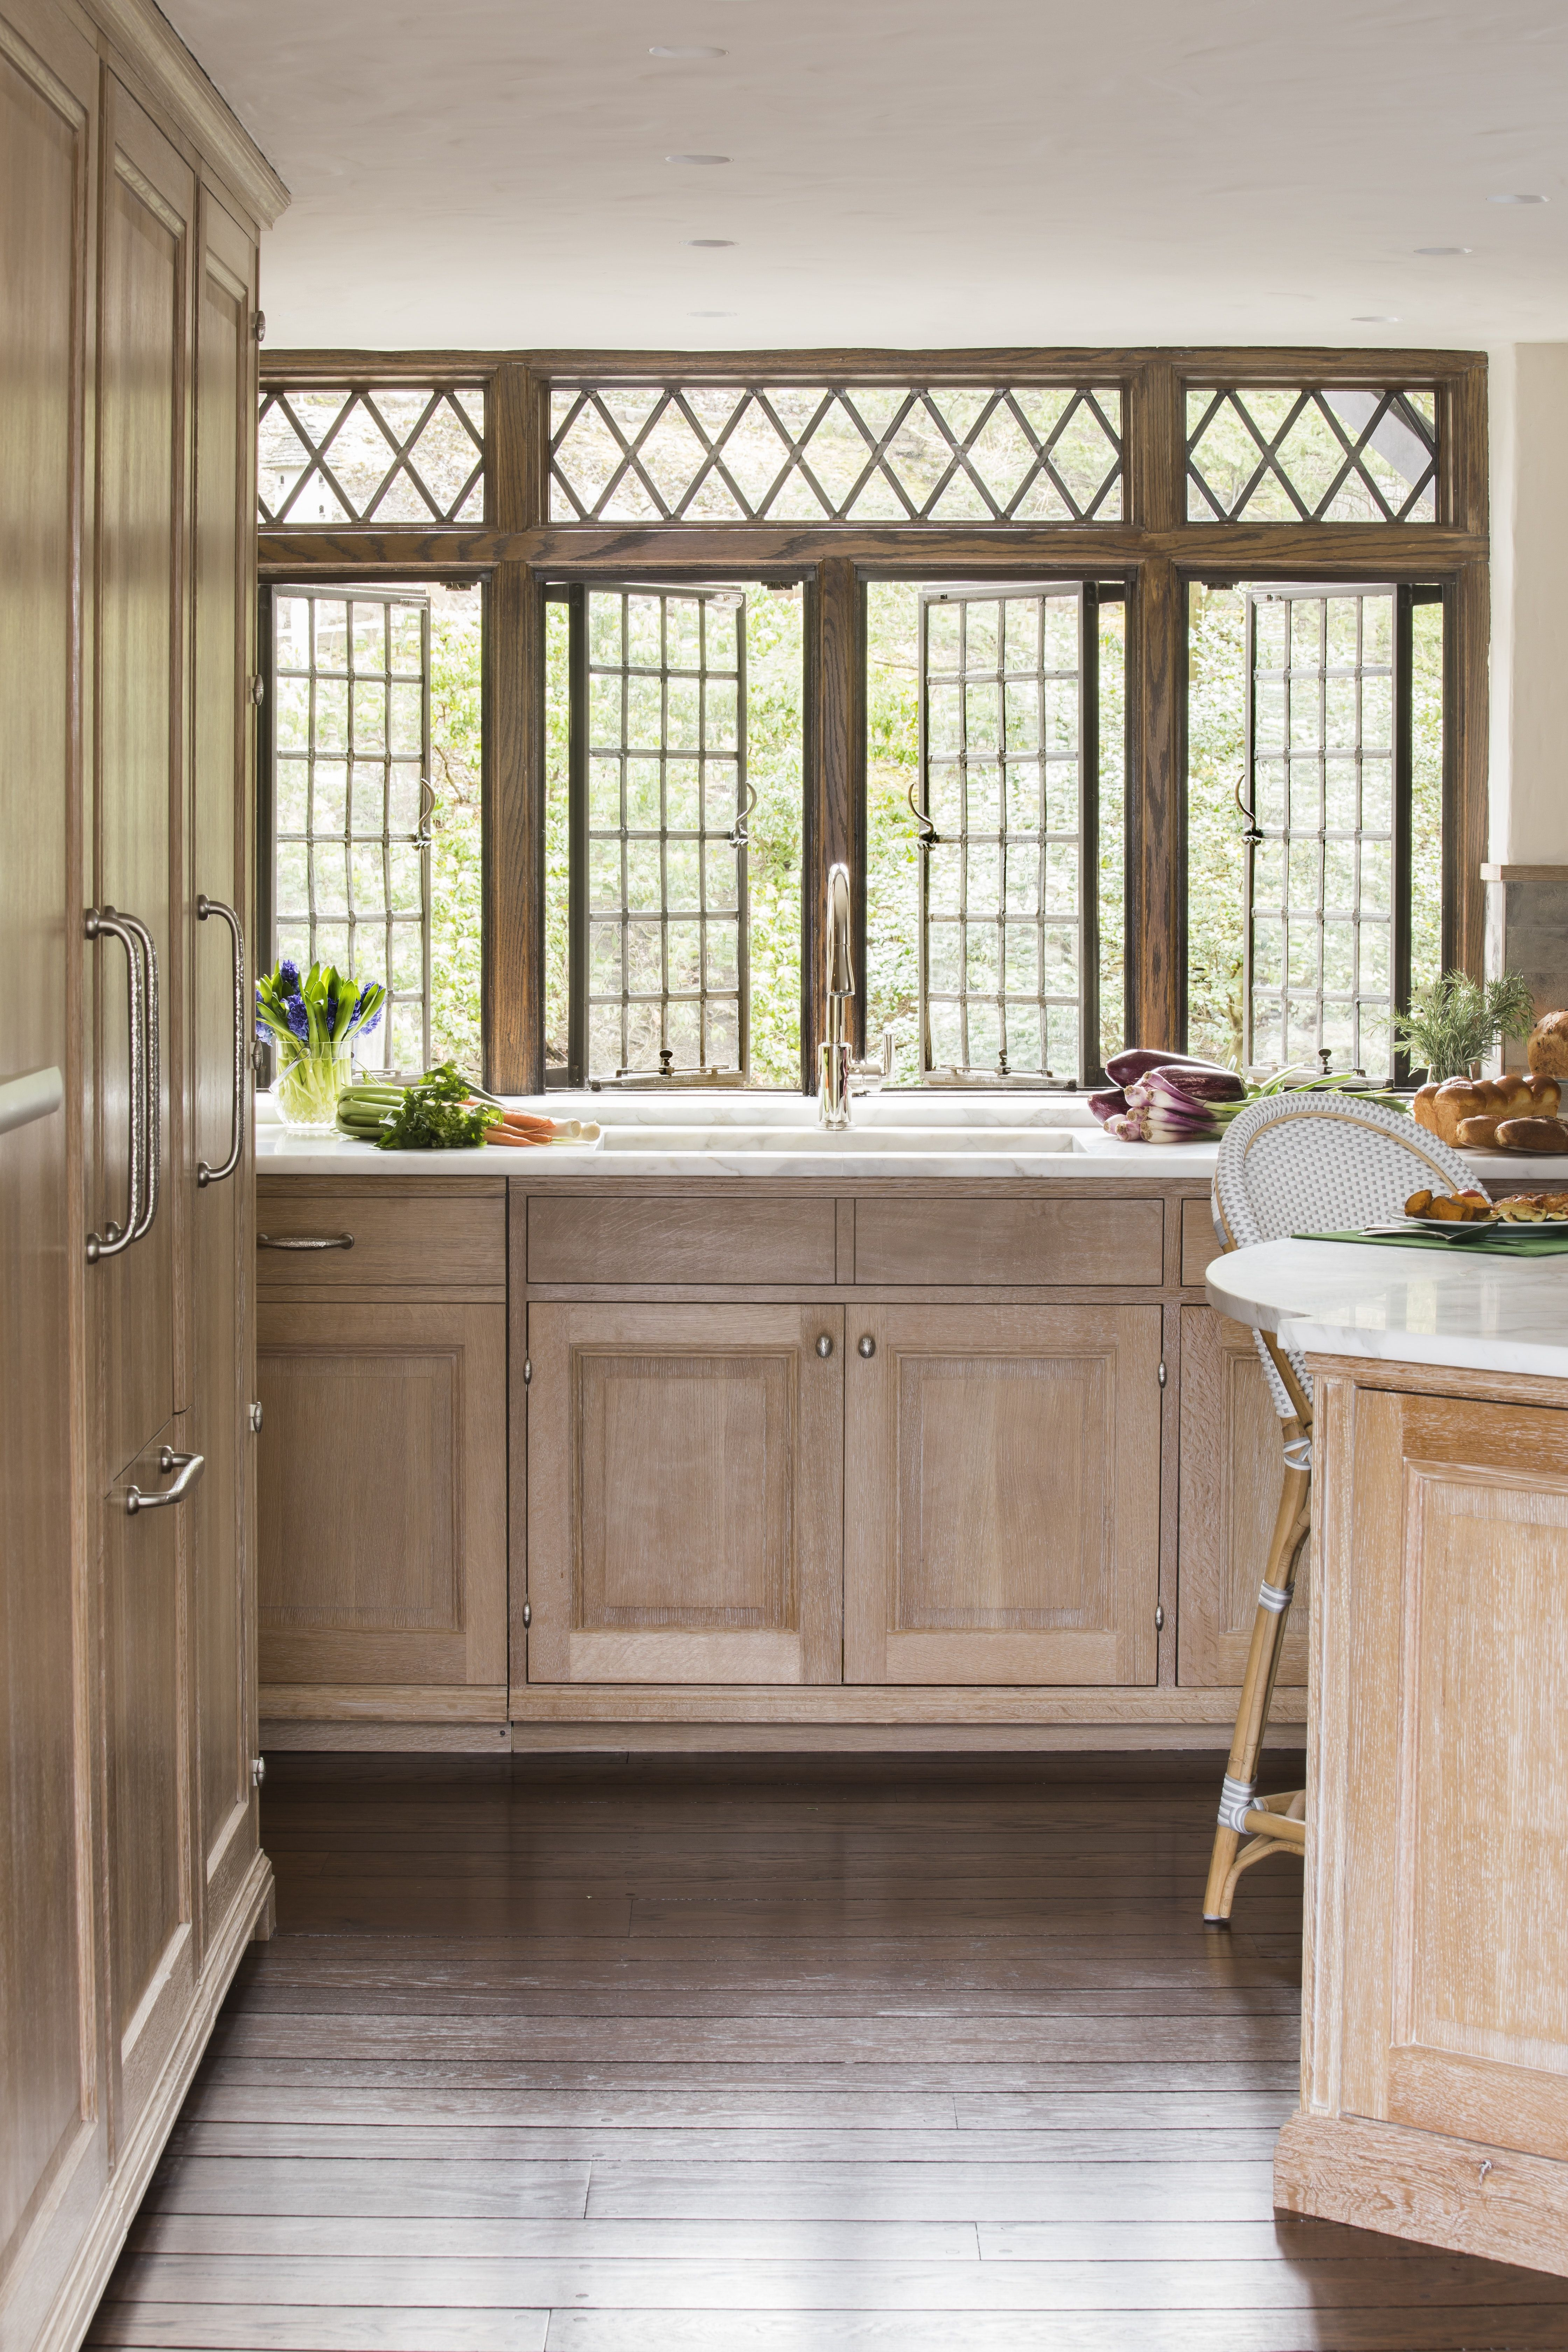 We Custom Built The Quarter Sawn And Rift White Oak Cabinetry For This Kitchen By Sarah Blank Des White Oak Kitchen Interior Design Bedroom Kitchen Renovation